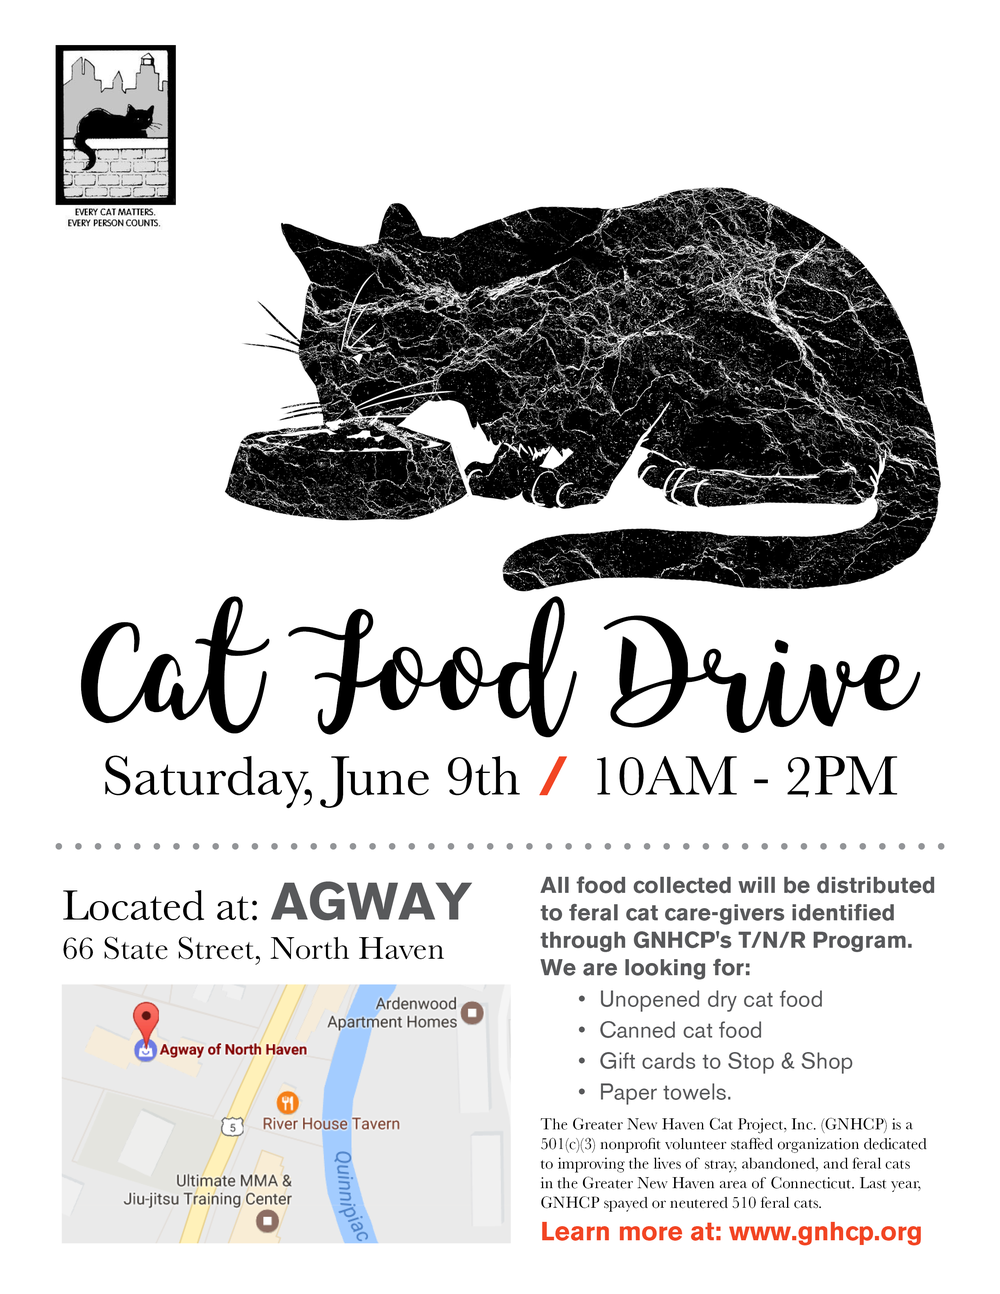 Catfooddrive_Agway_20183.png